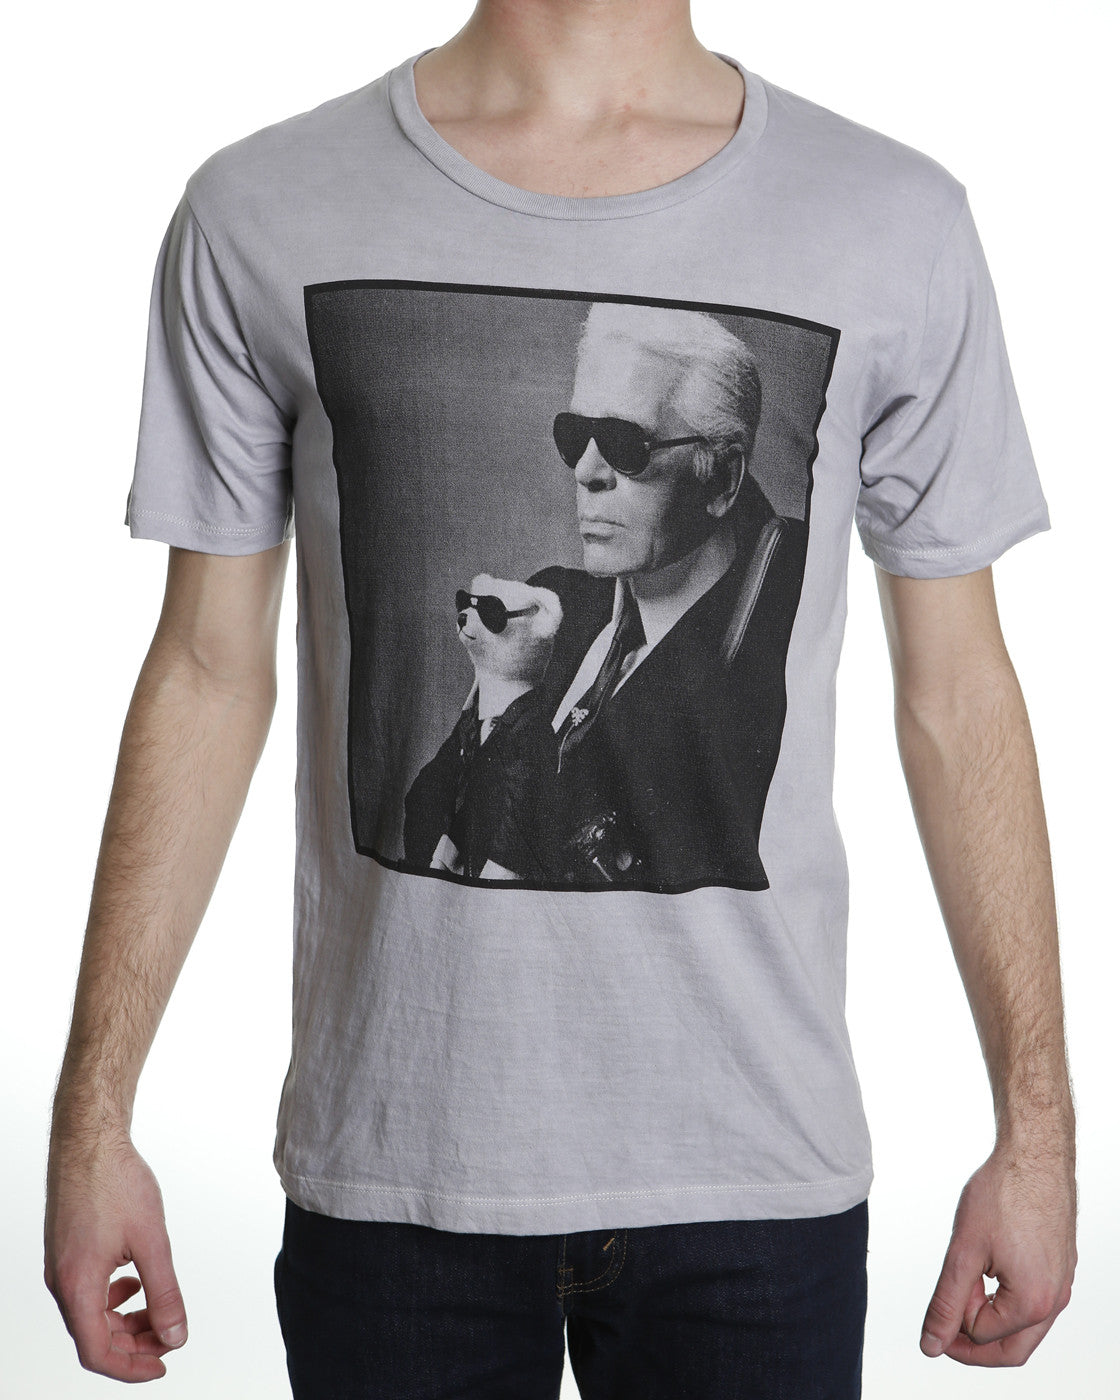 Karl and Friend T-shirt